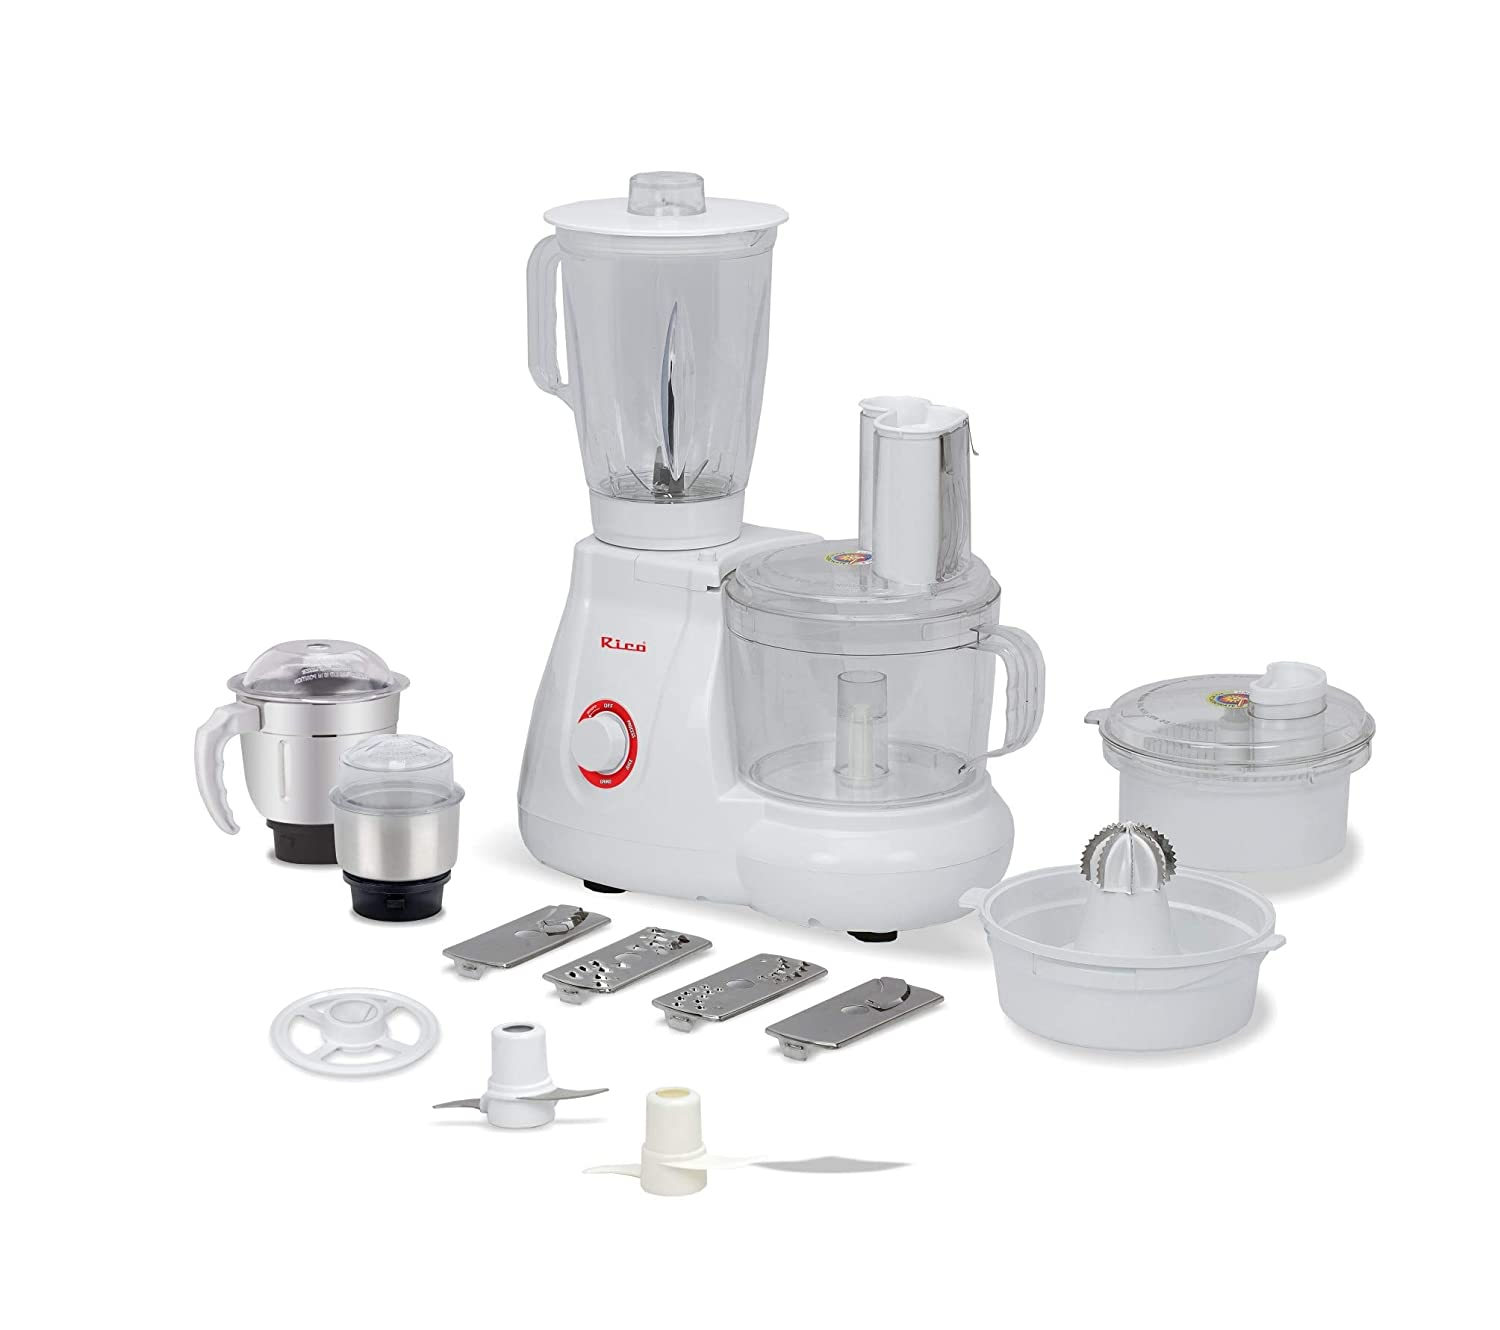 Rico All in One Food Processor